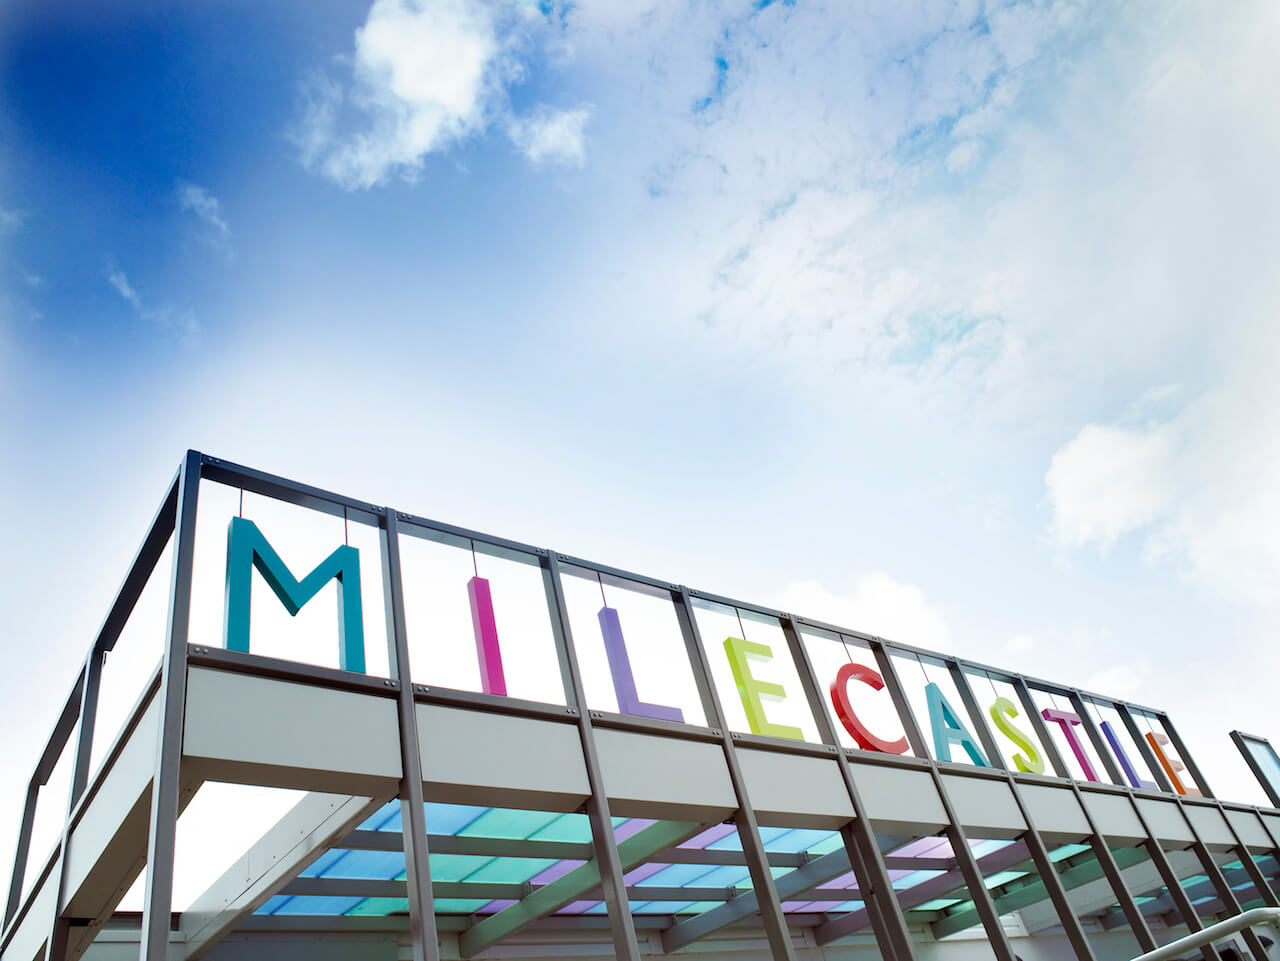 Design-led wayfinding at Milecastle Primary School with bold coloured lettering